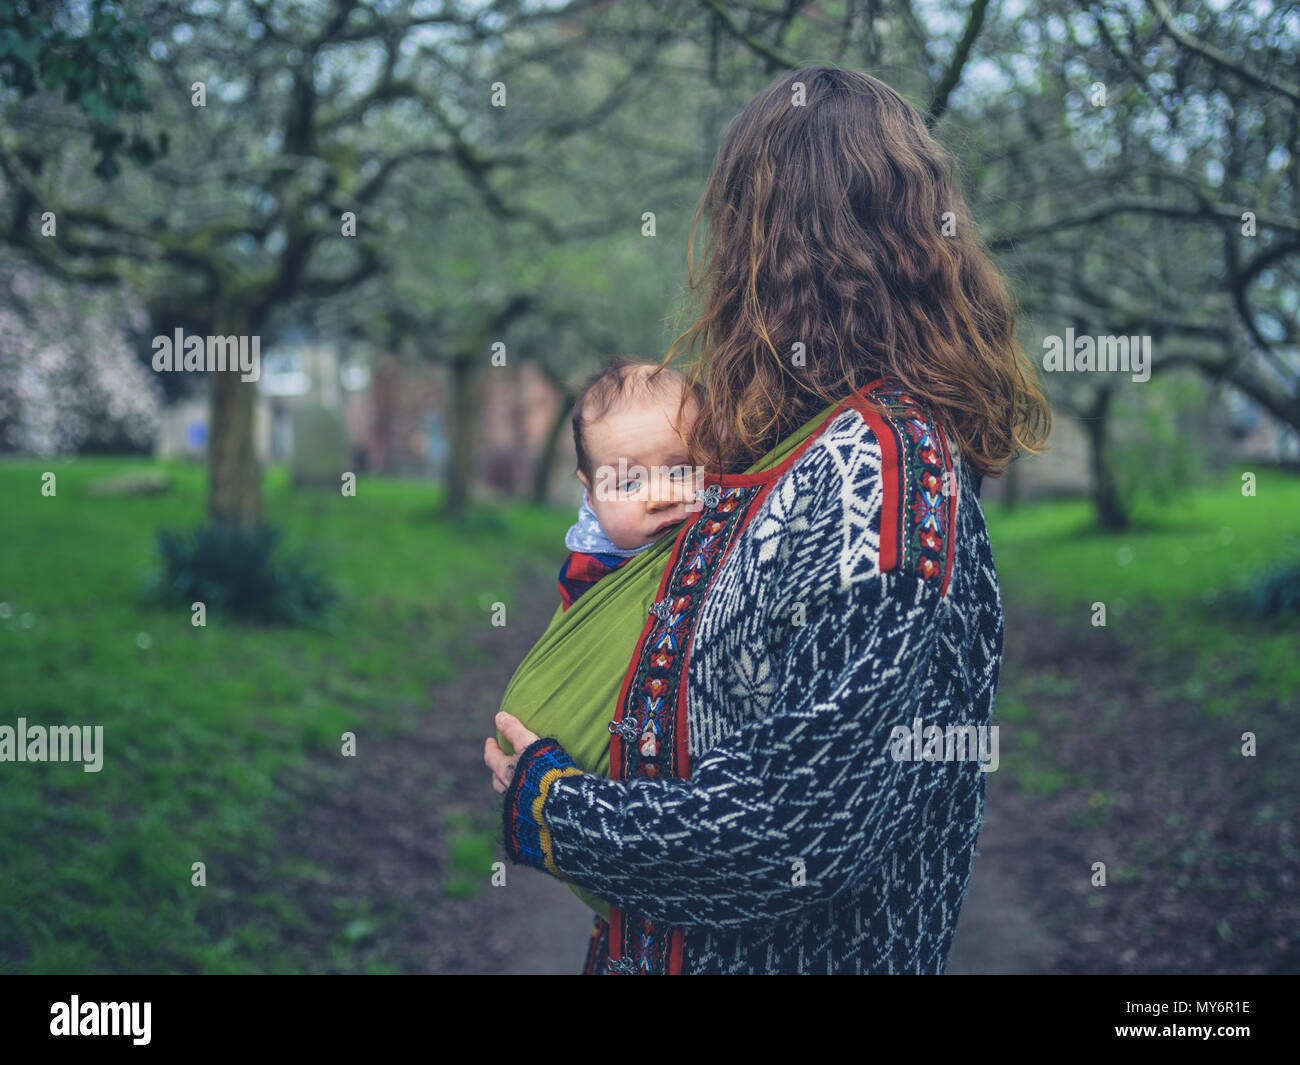 A young mother is standing in the park with her baby in a carrier sling - Stock Image